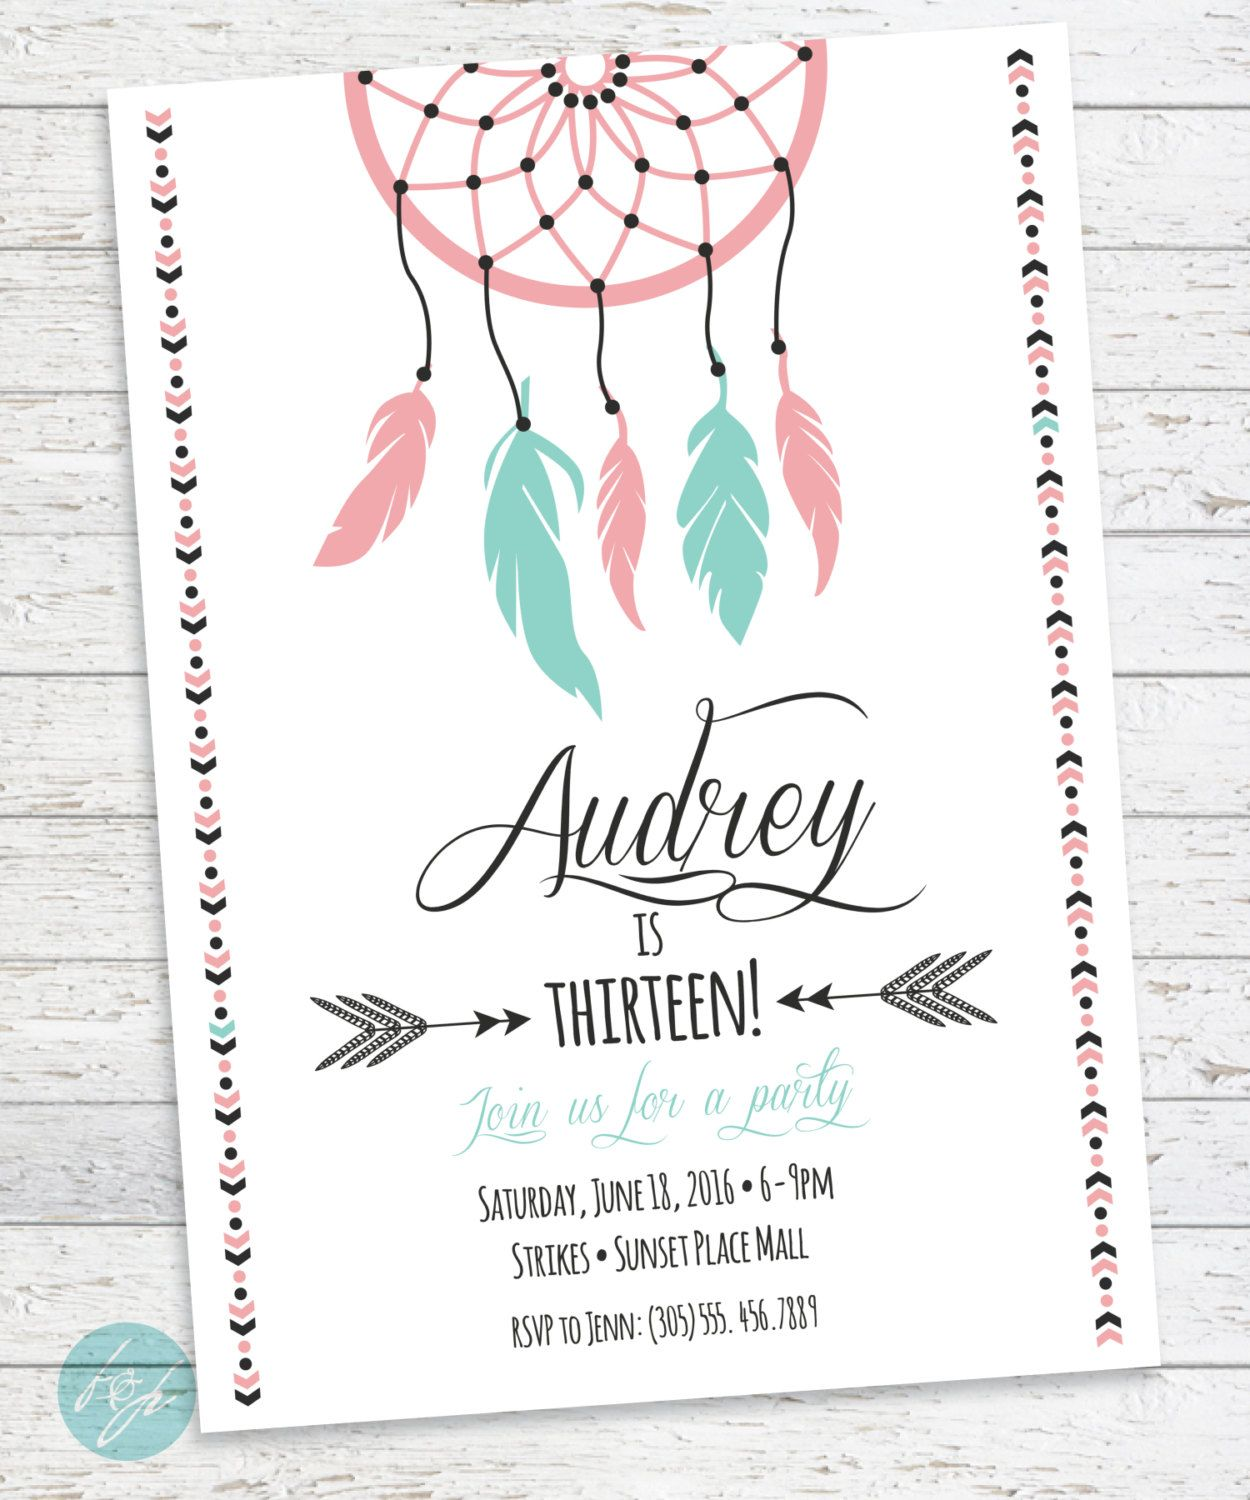 Boho Birthday Invitation, Aztec Tribal Invitation, Bohemian ...